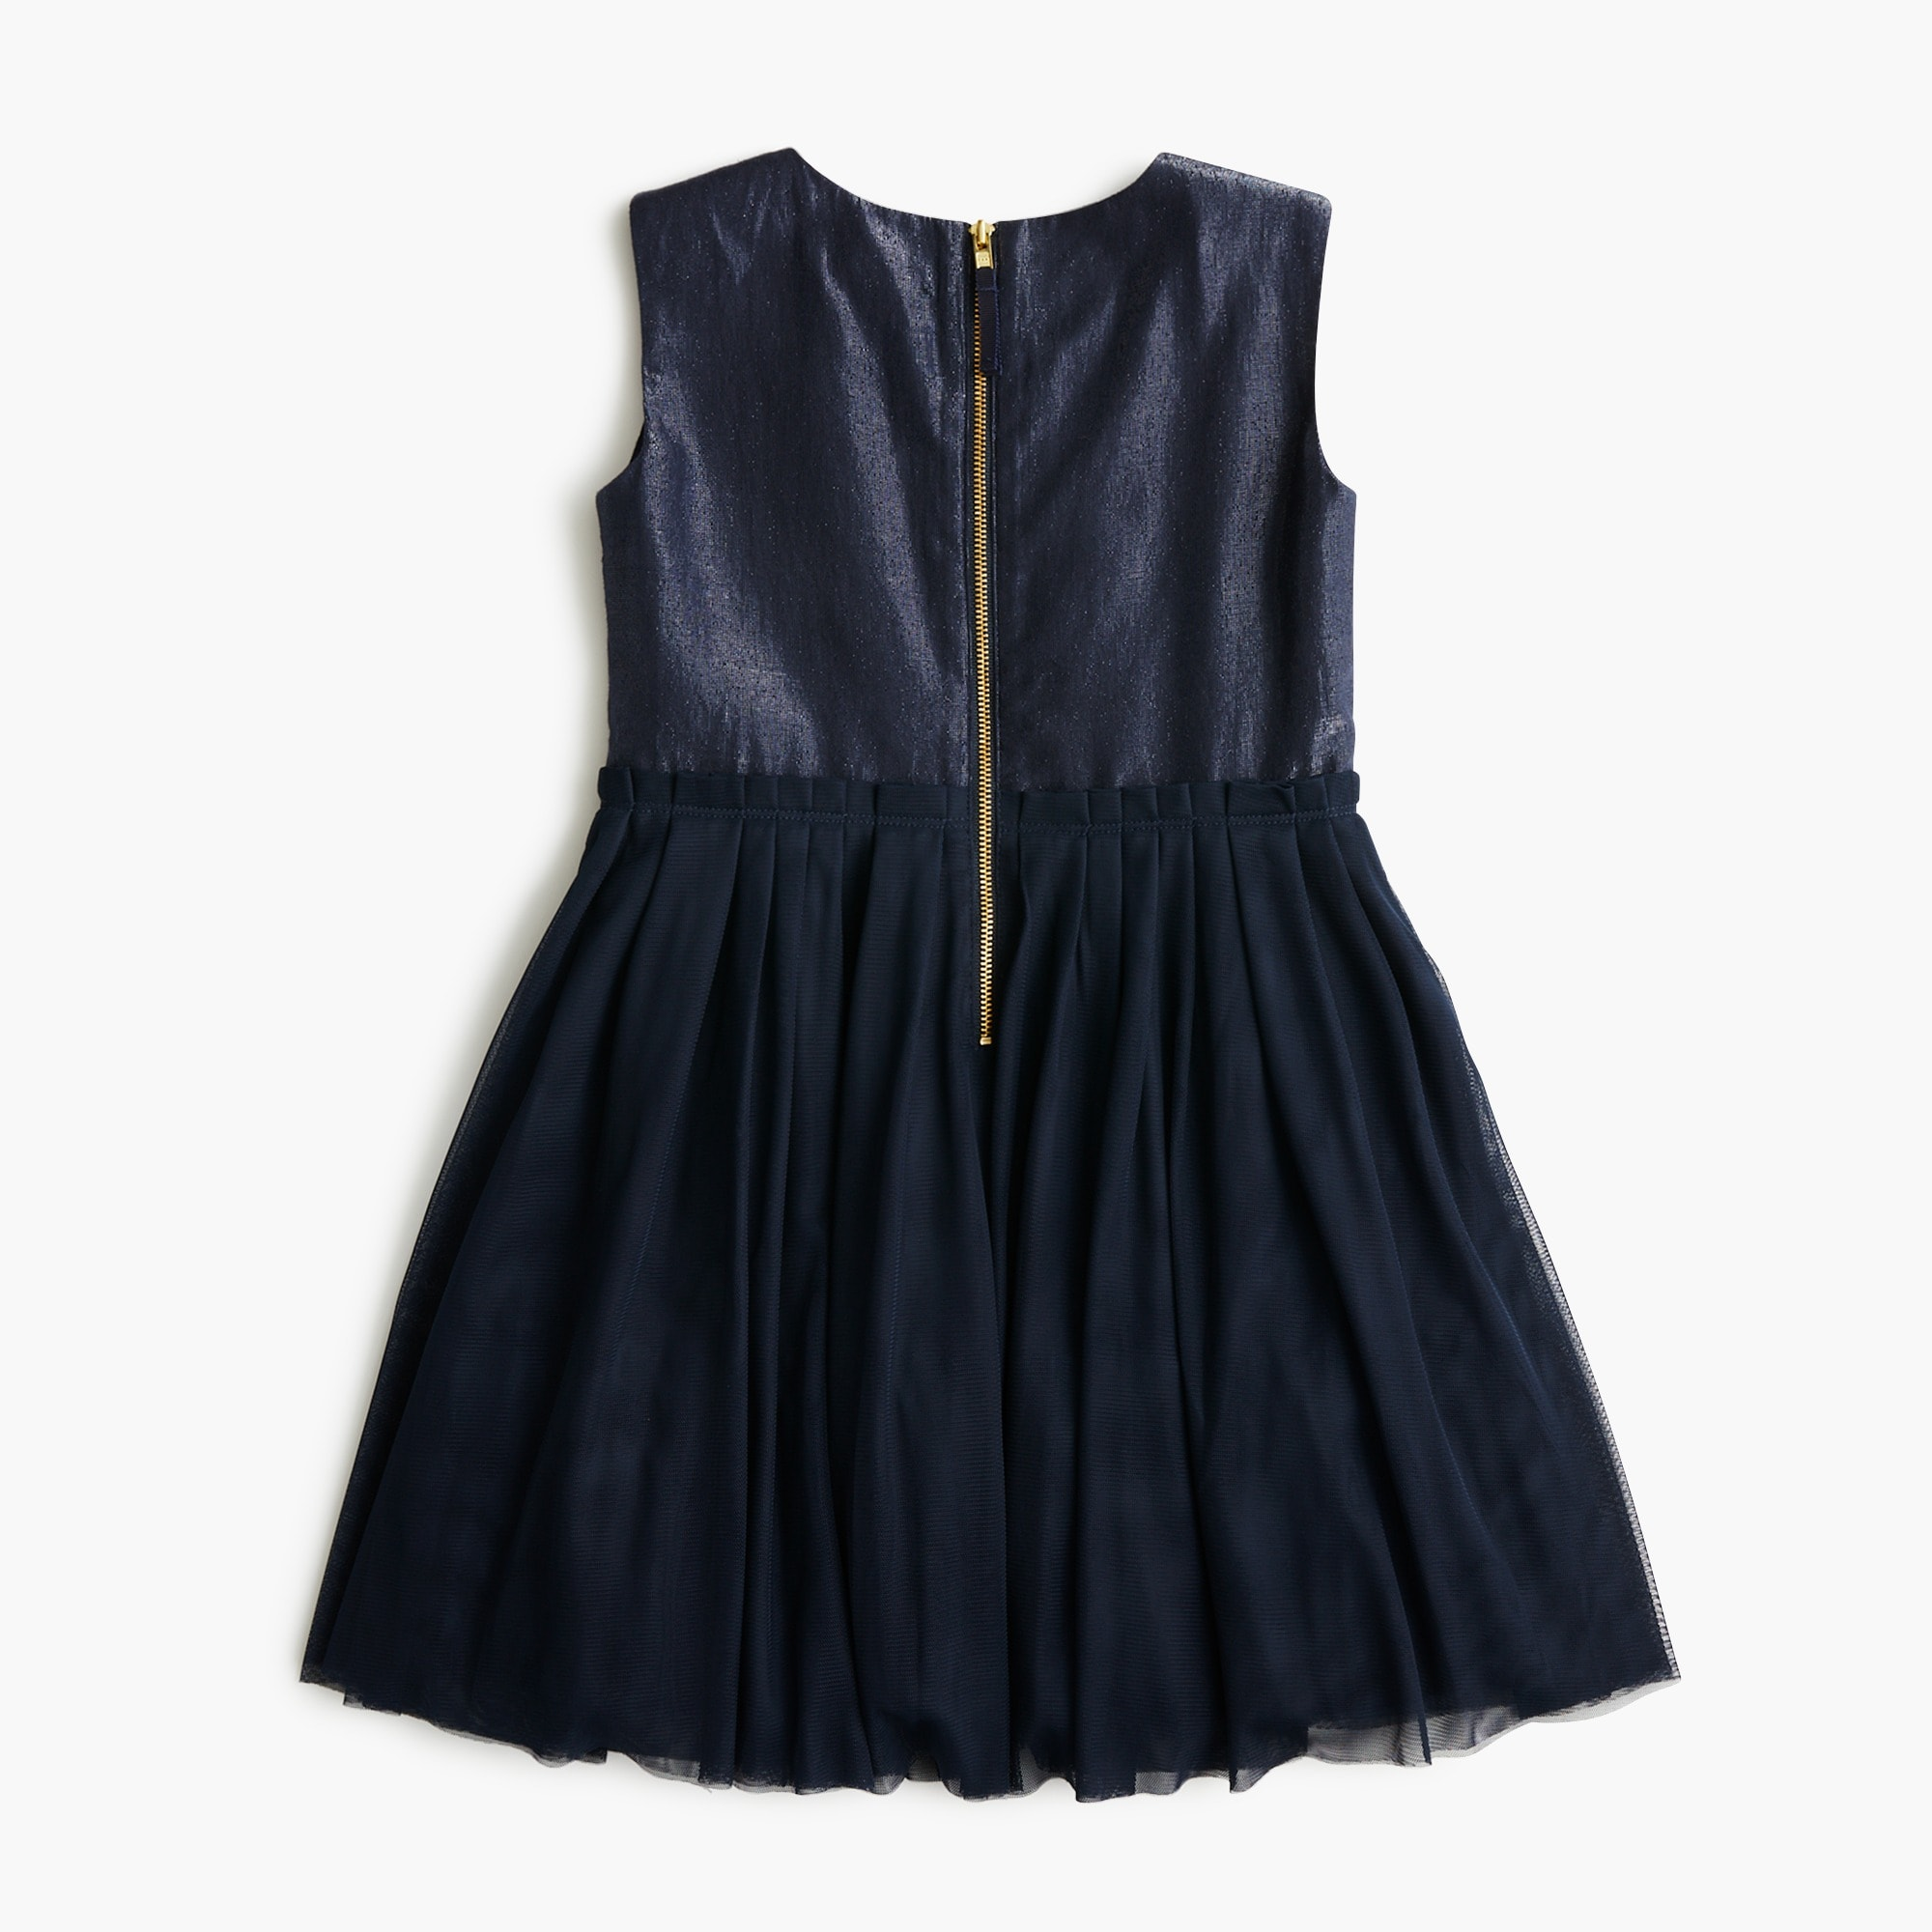 Girls' tulle-skirted dress